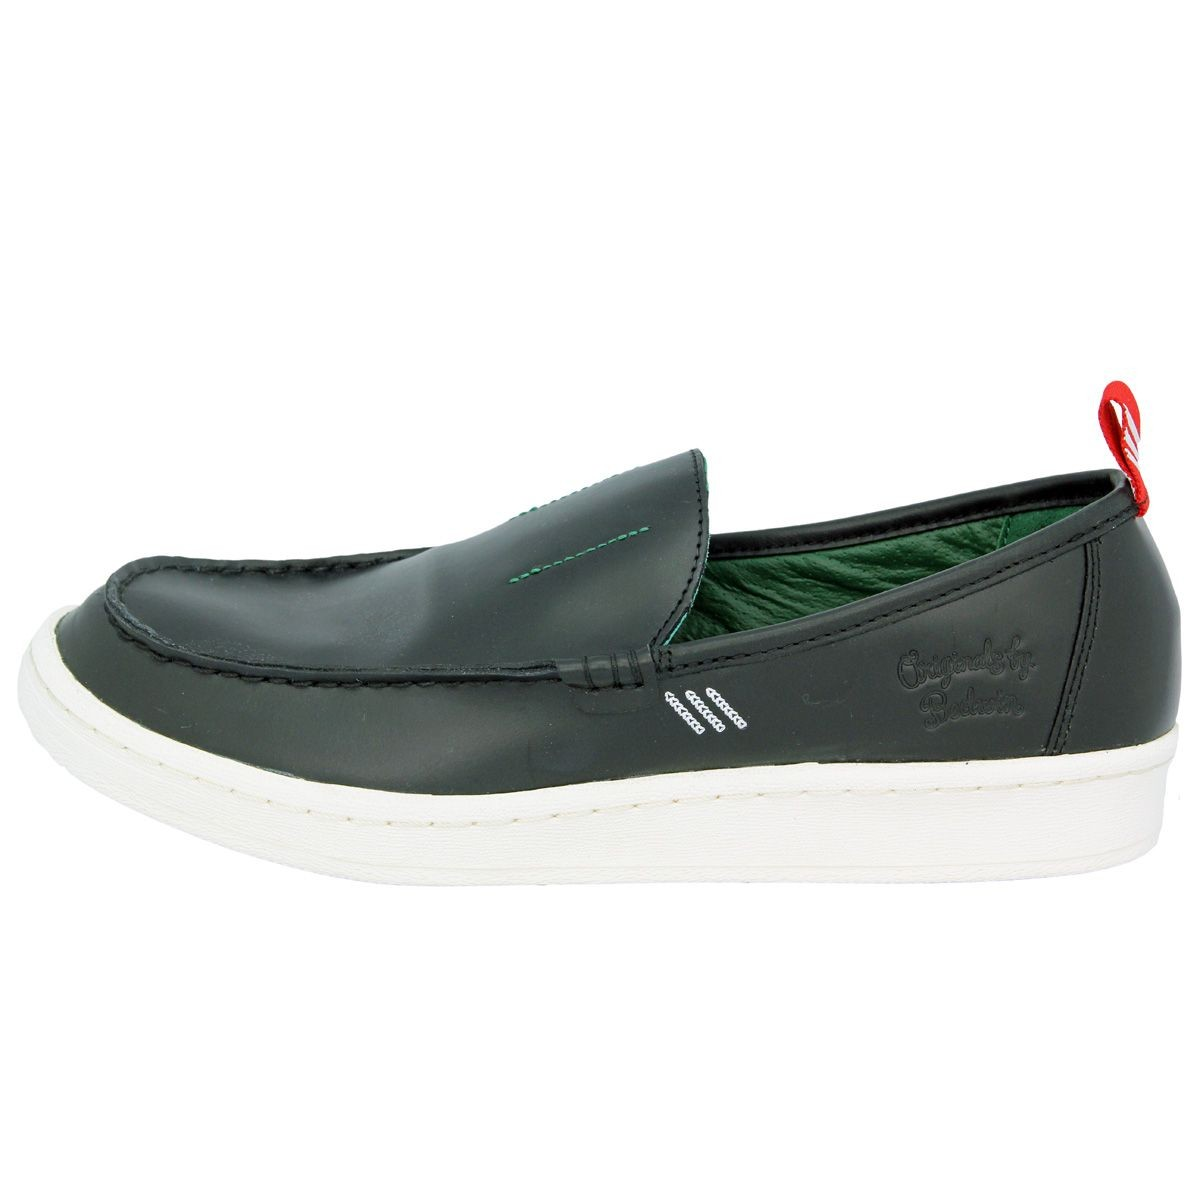 Mocassins Cuir Bw Loafer Taille : 37 13 | Chaussure